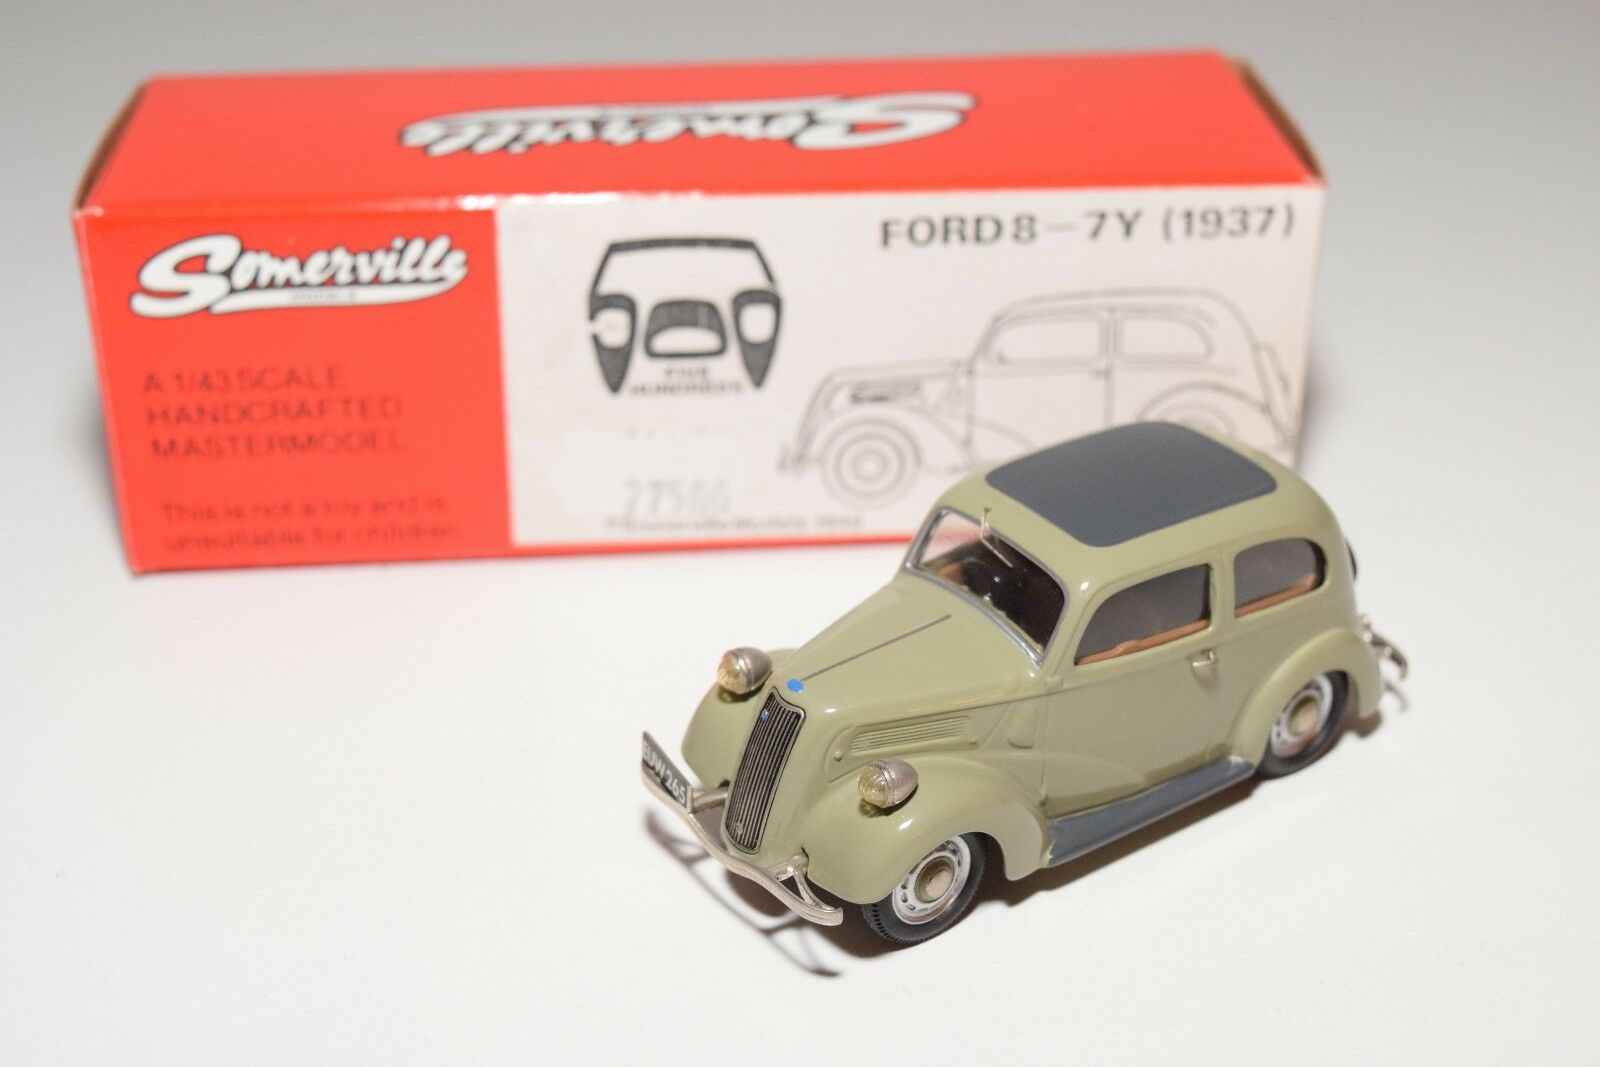 SOMERVILLE MODELS 145 FORD PERFECT 8-7Y 2018 Gris MINT BOXED 12/500 RARE